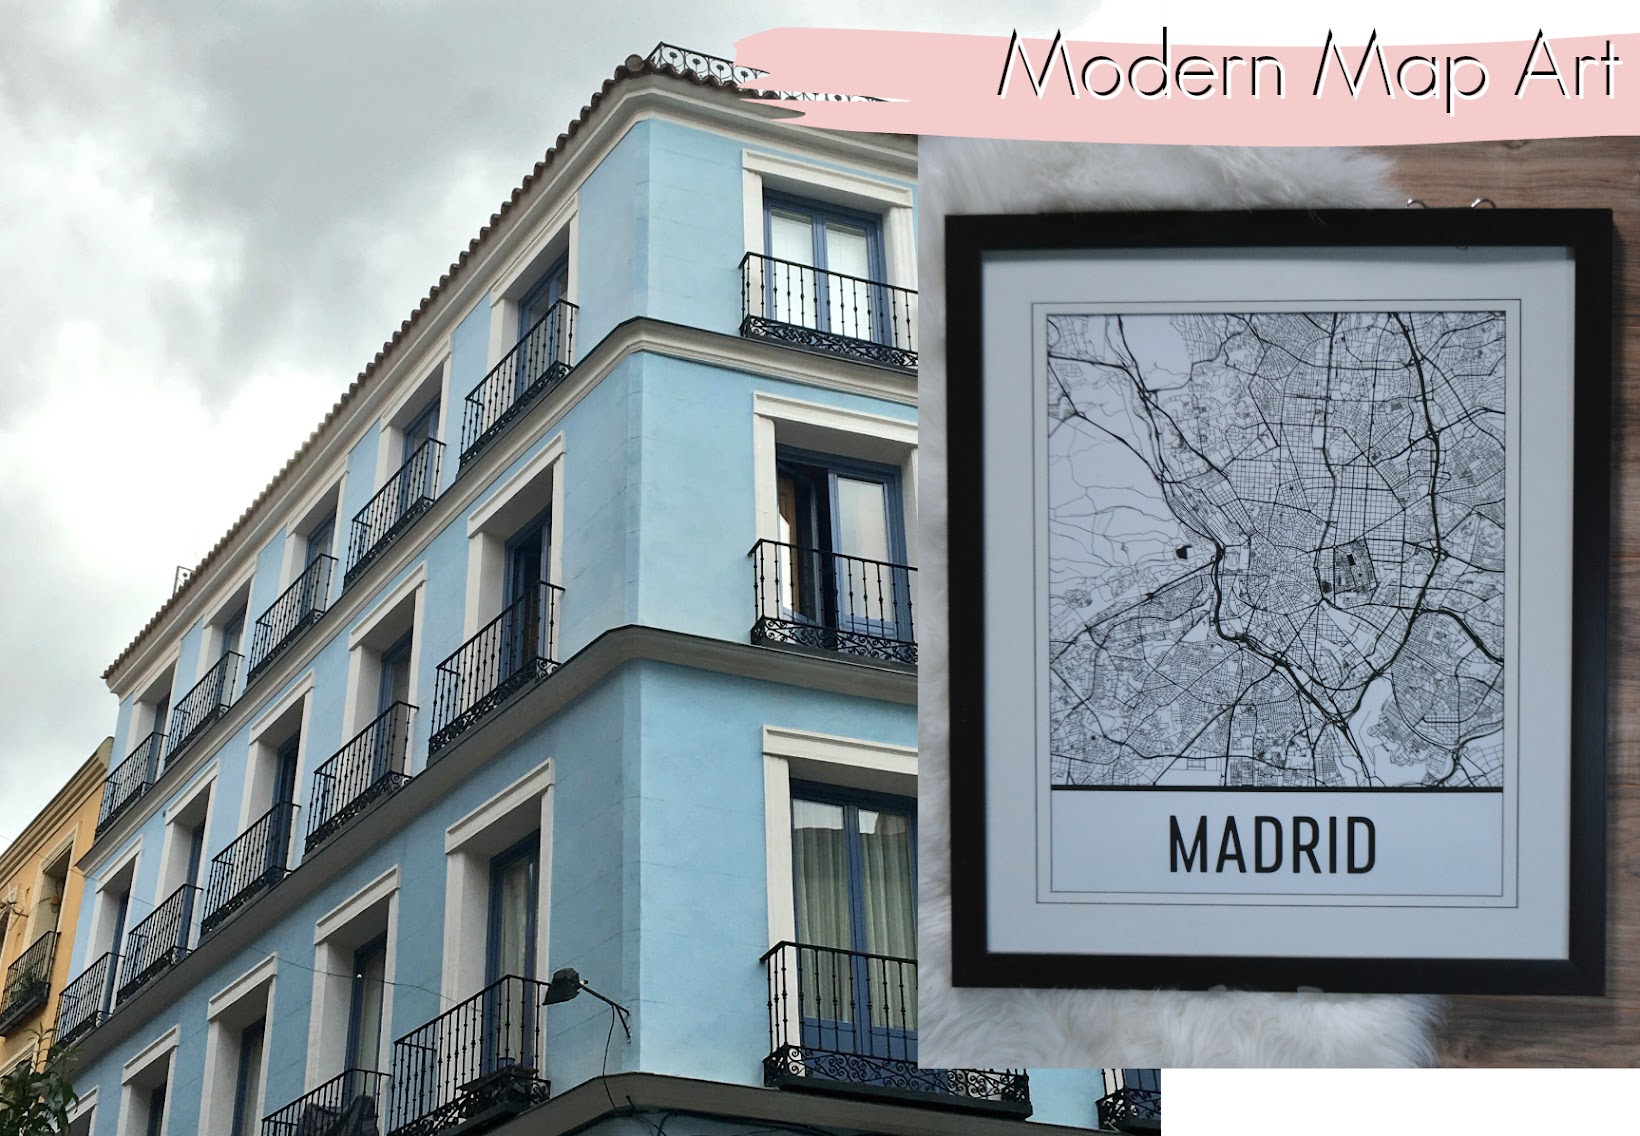 Modern Map Art, MADRID SPAIN MAP, ART, PRINT, POSTER, WALL ART, Madrid, travel to Madrid, viajar a Madrid, home decor, decoración hogar, poster de Madrid, mapa de Madrid, Madrid map print, black and white print of Madrid, Madrid en blanco y negro, musings about Madrid, Chicago blogger, Fashionlingual, Latina Blogger, Chicago Latina blogger